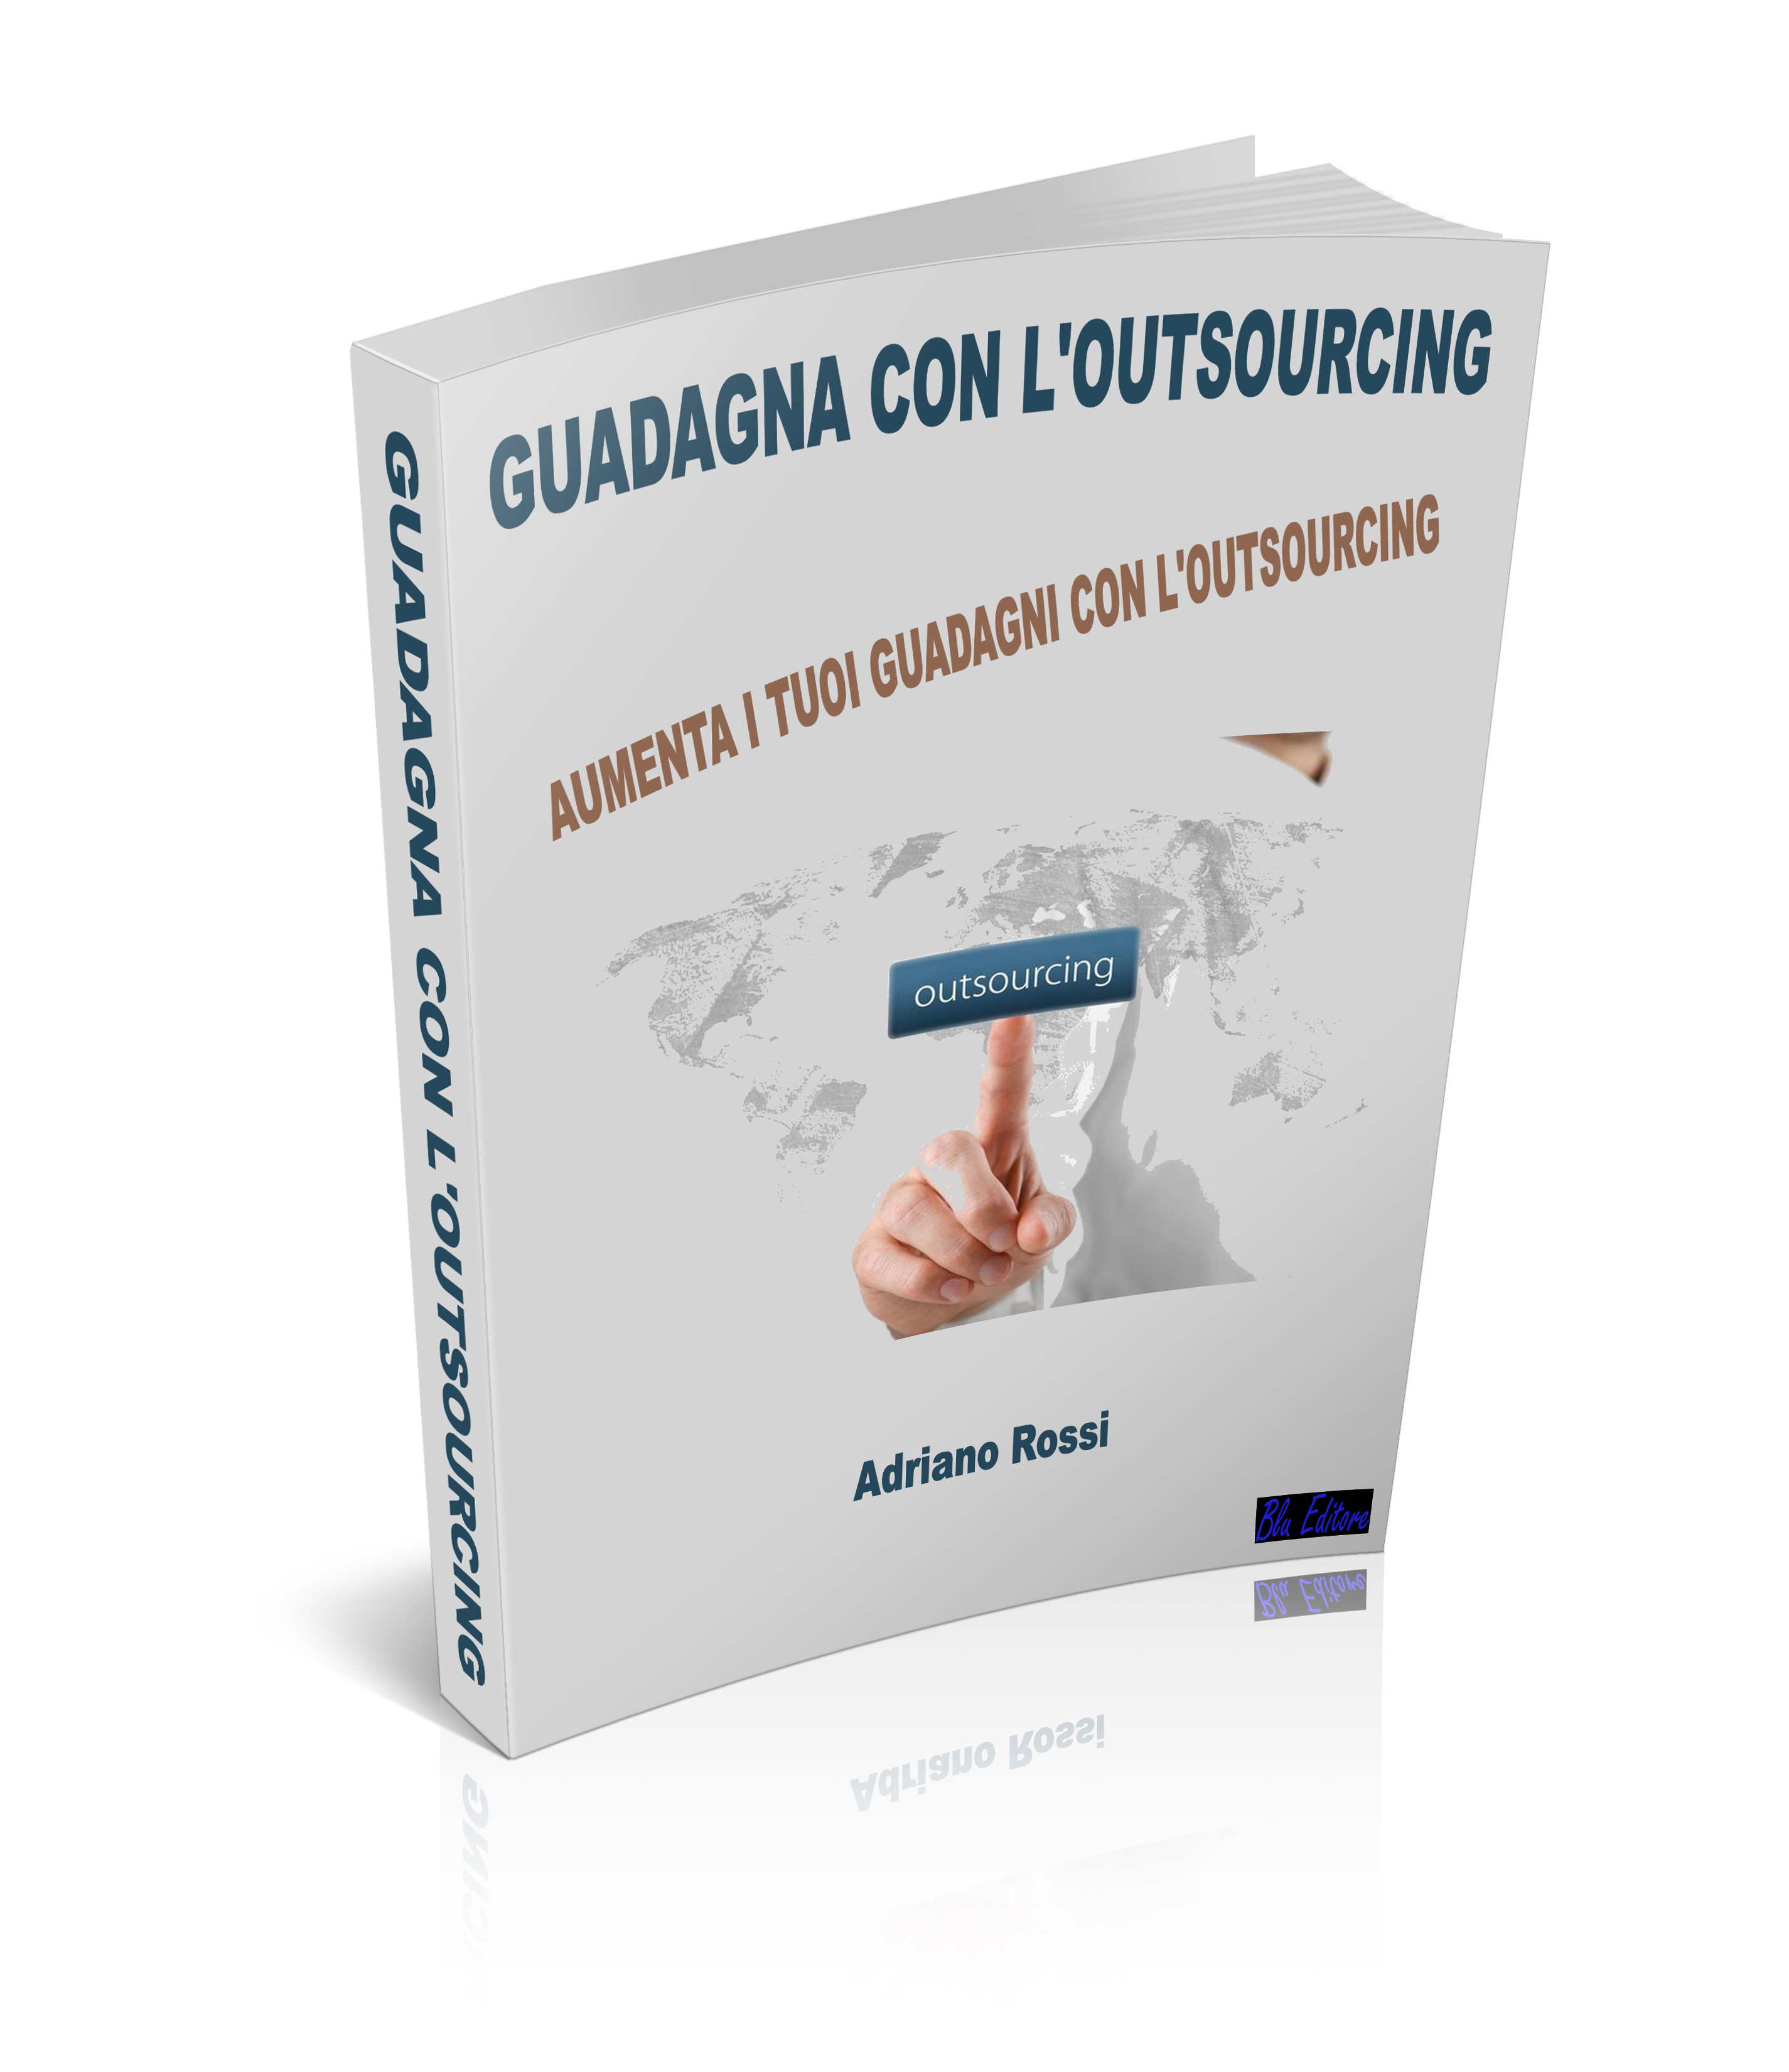 Guadagna con L'Outsourcing